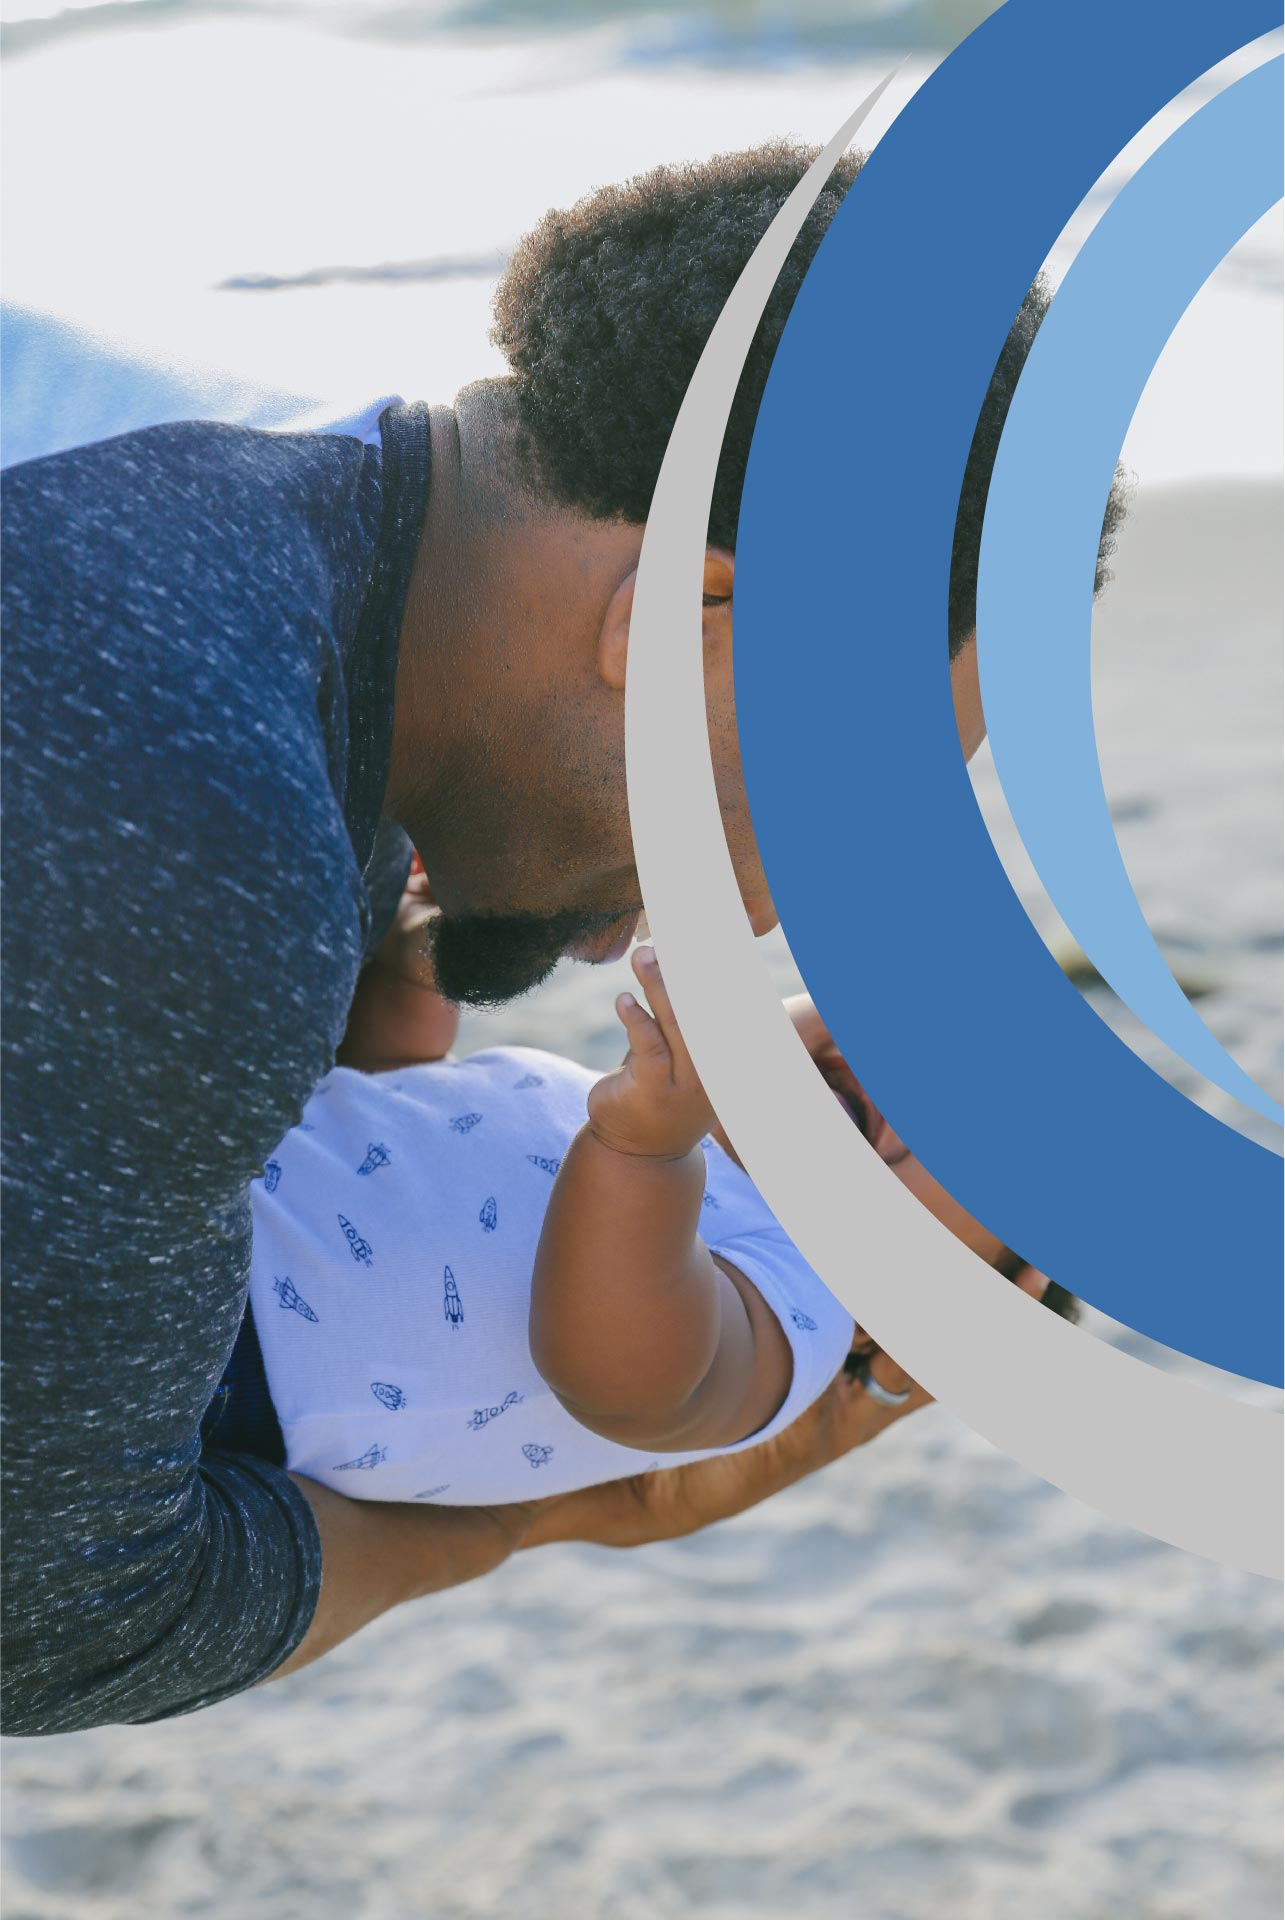 An anonymous photo of a man with his baby with The Counseling Center logo across their faces